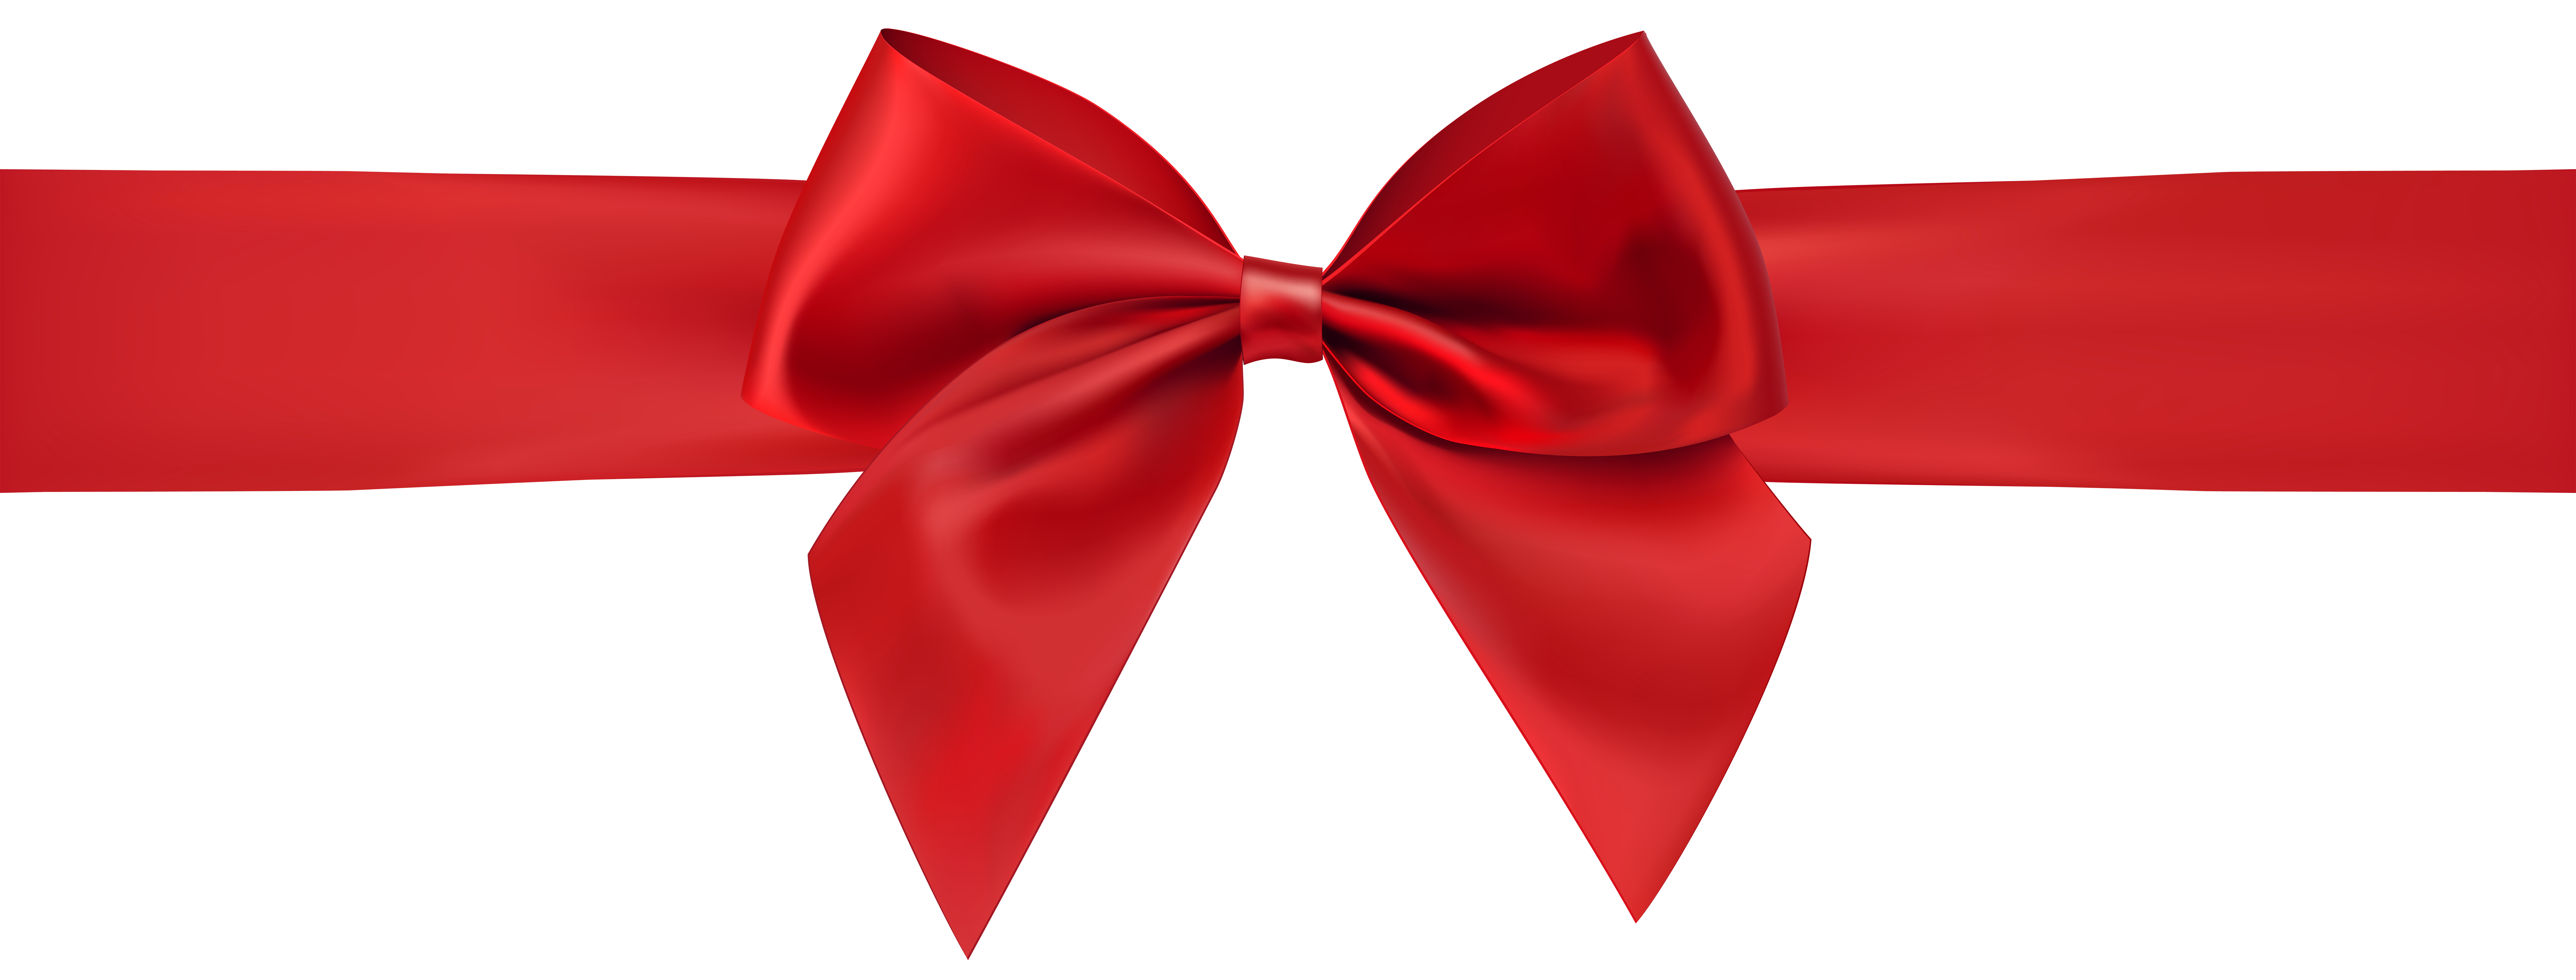 Red ribbon png transparent. Bow decoration clip art